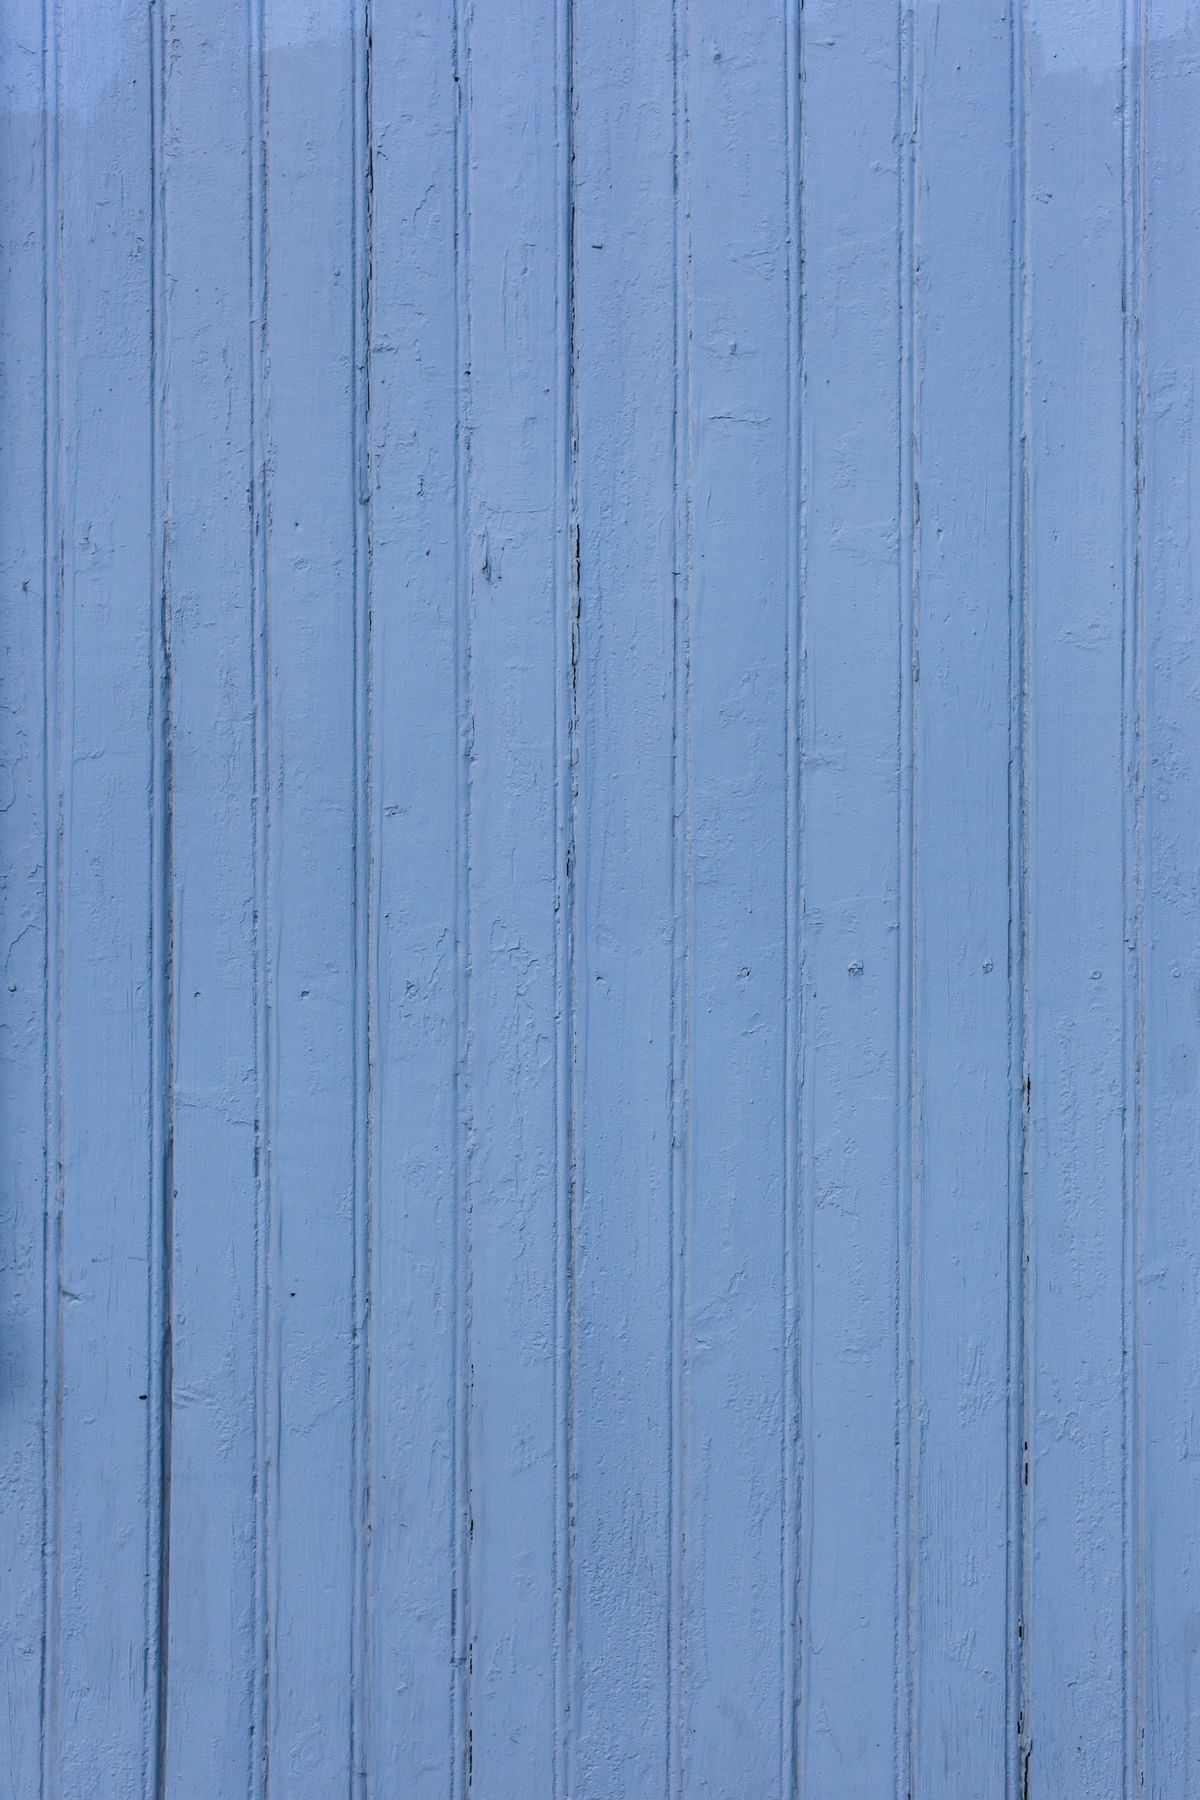 Retro Wood Blue Texture Background